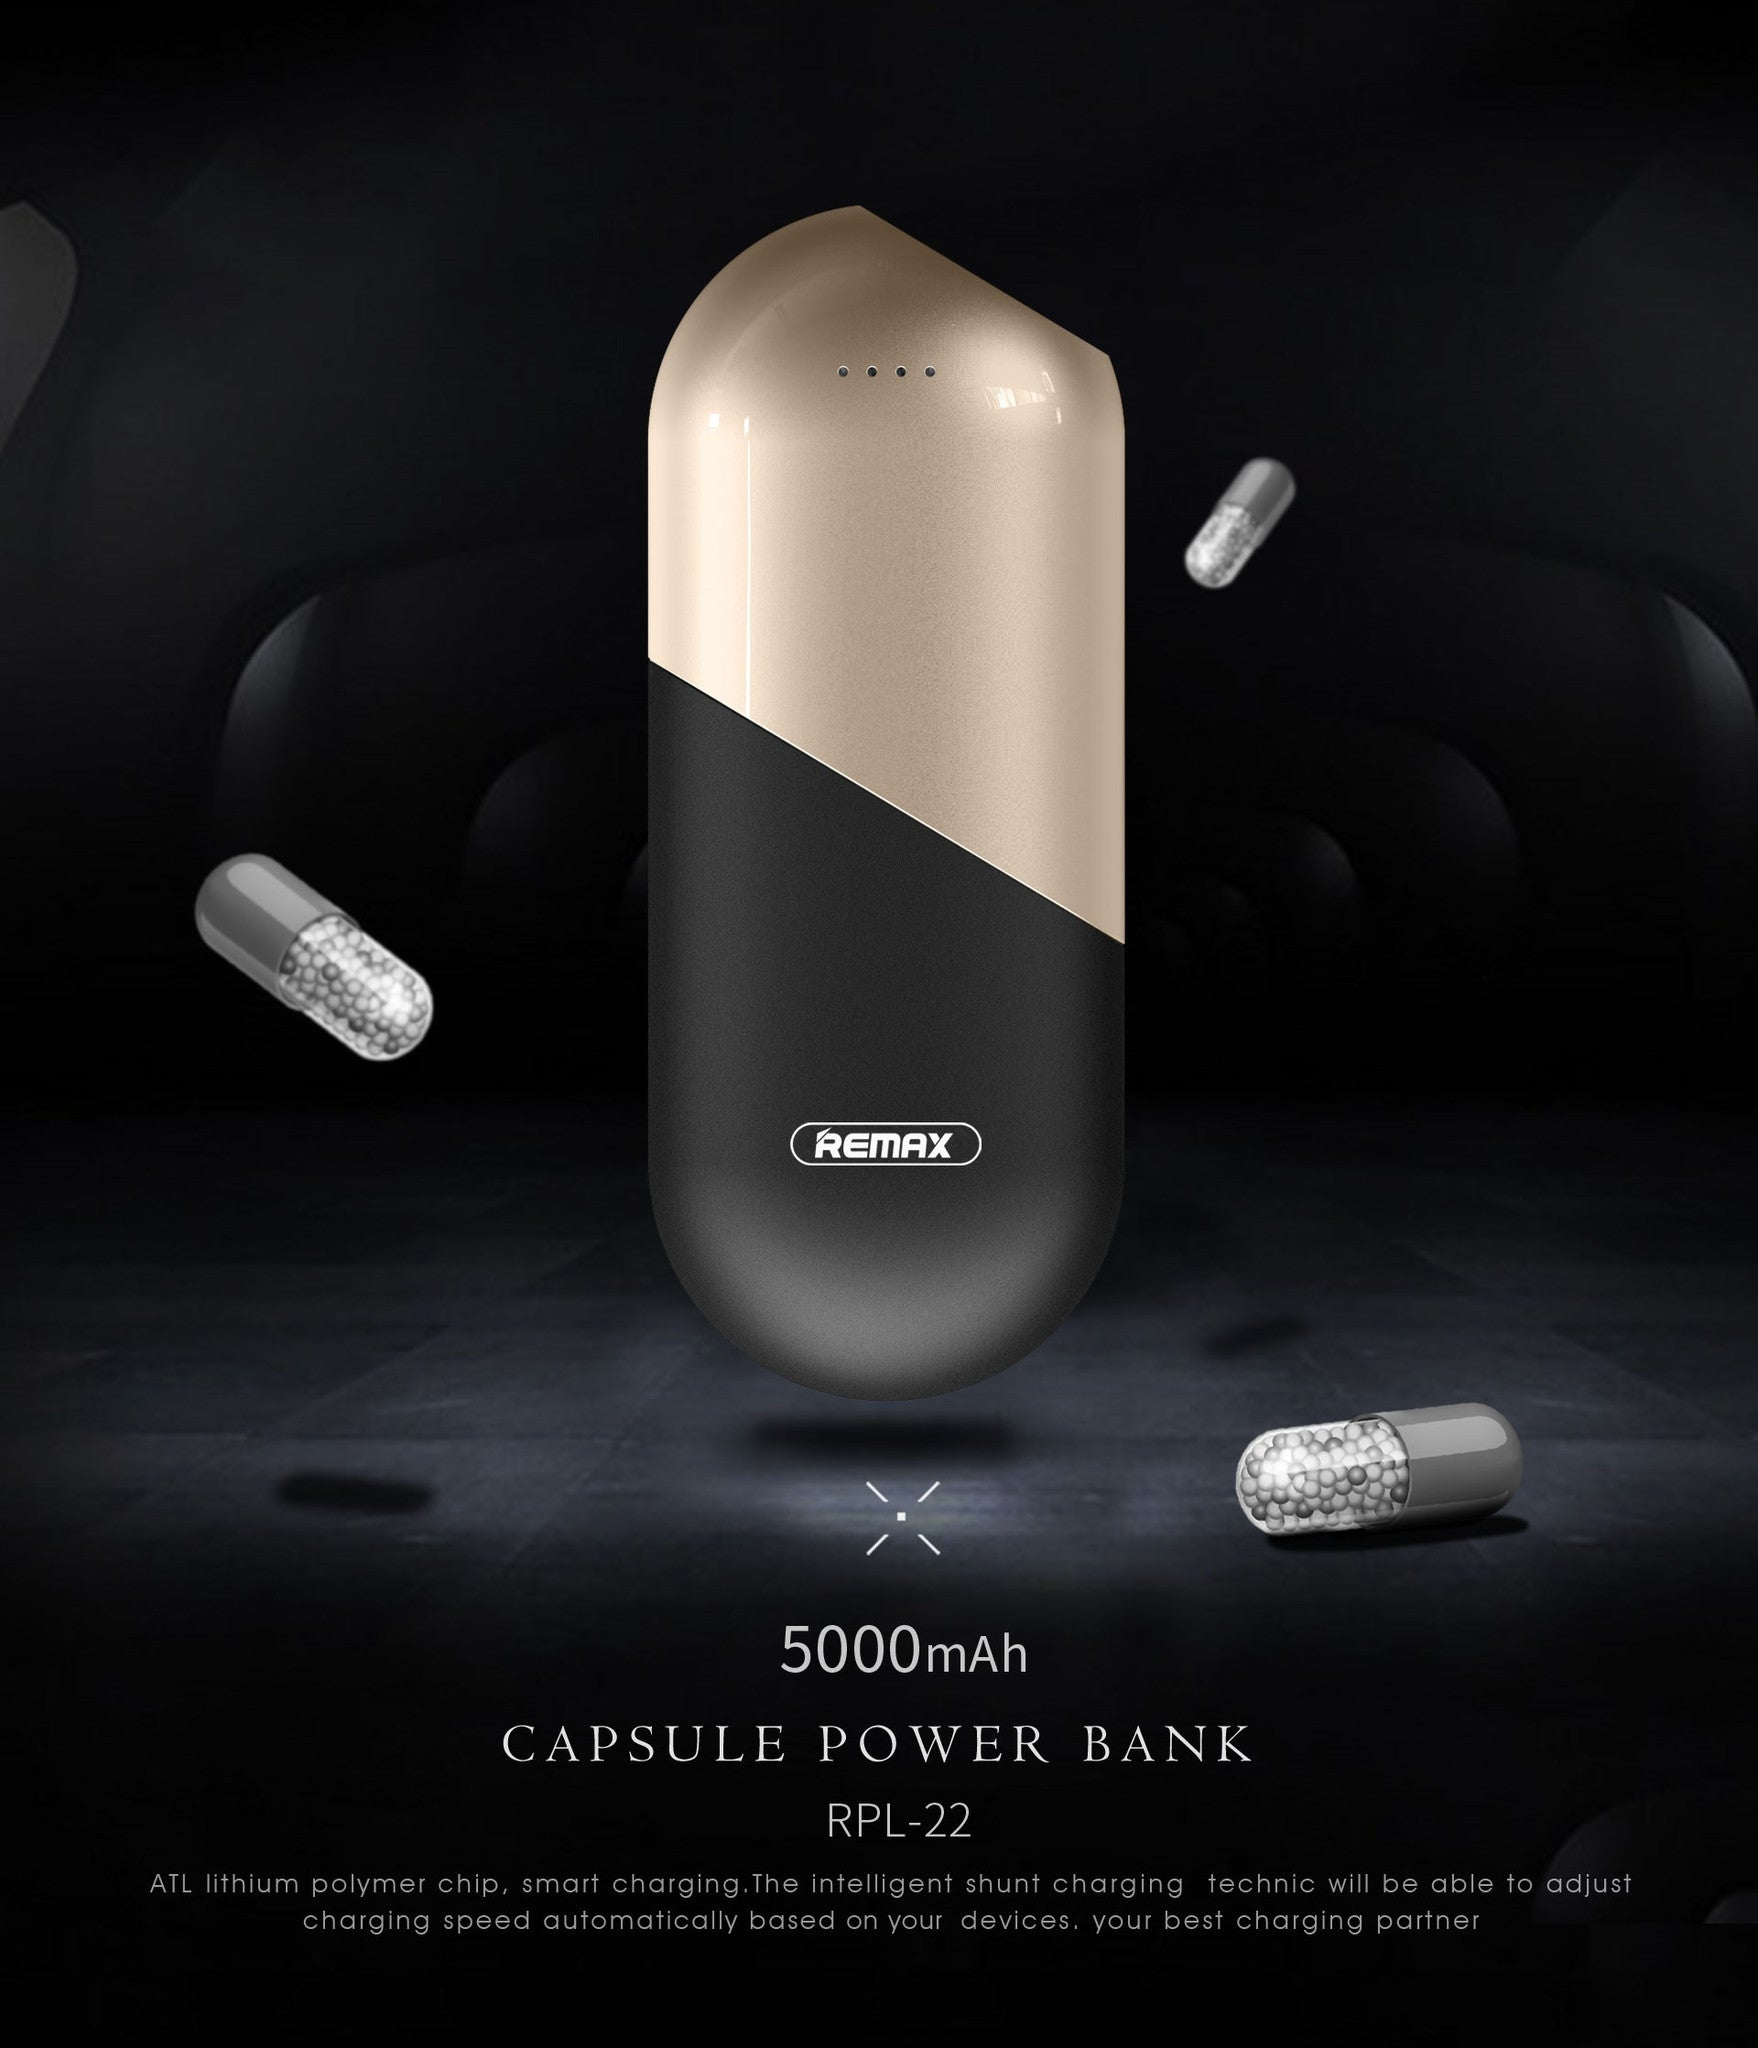 REMAX Official Store -Capsule Power Bank 50000mAh RPP-22